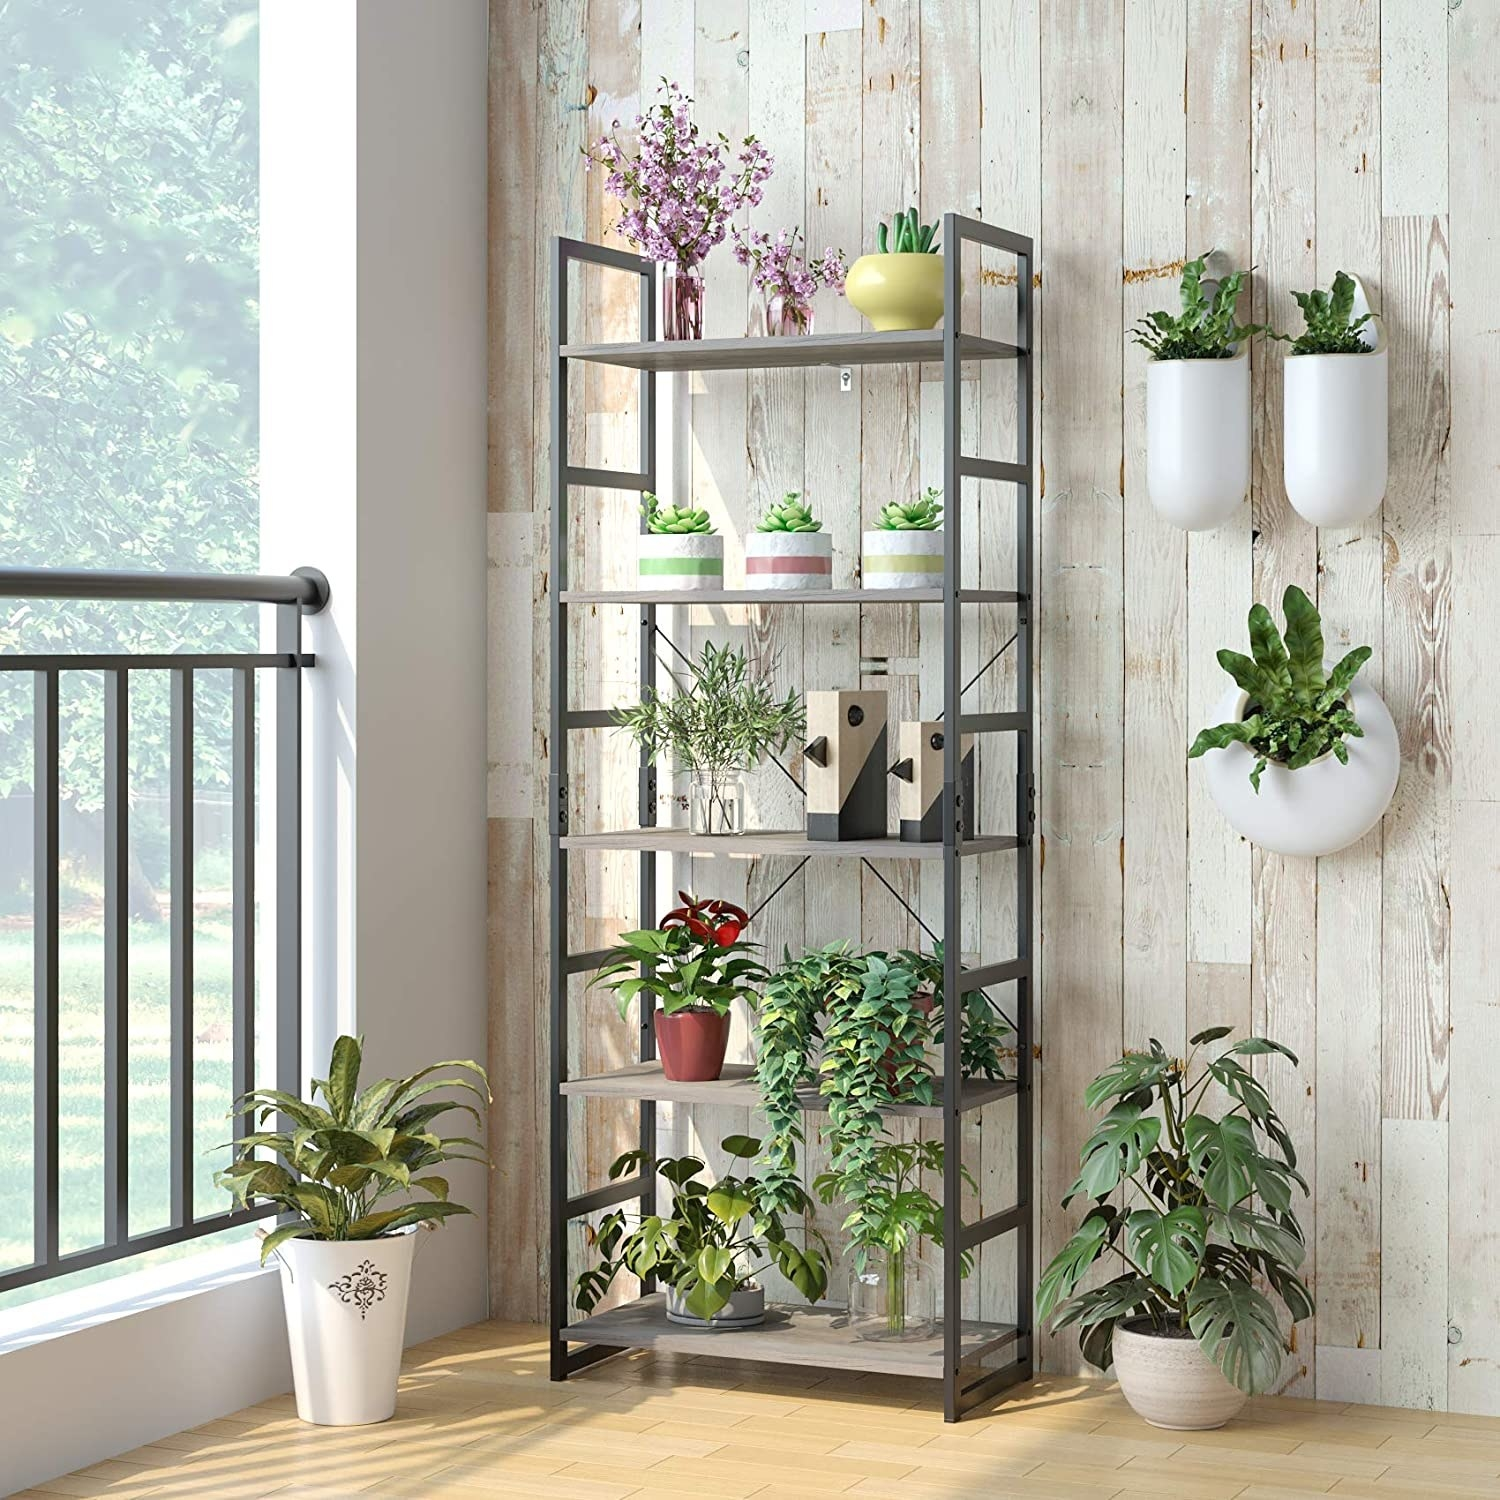 five-tier open bookcase with house plants on it